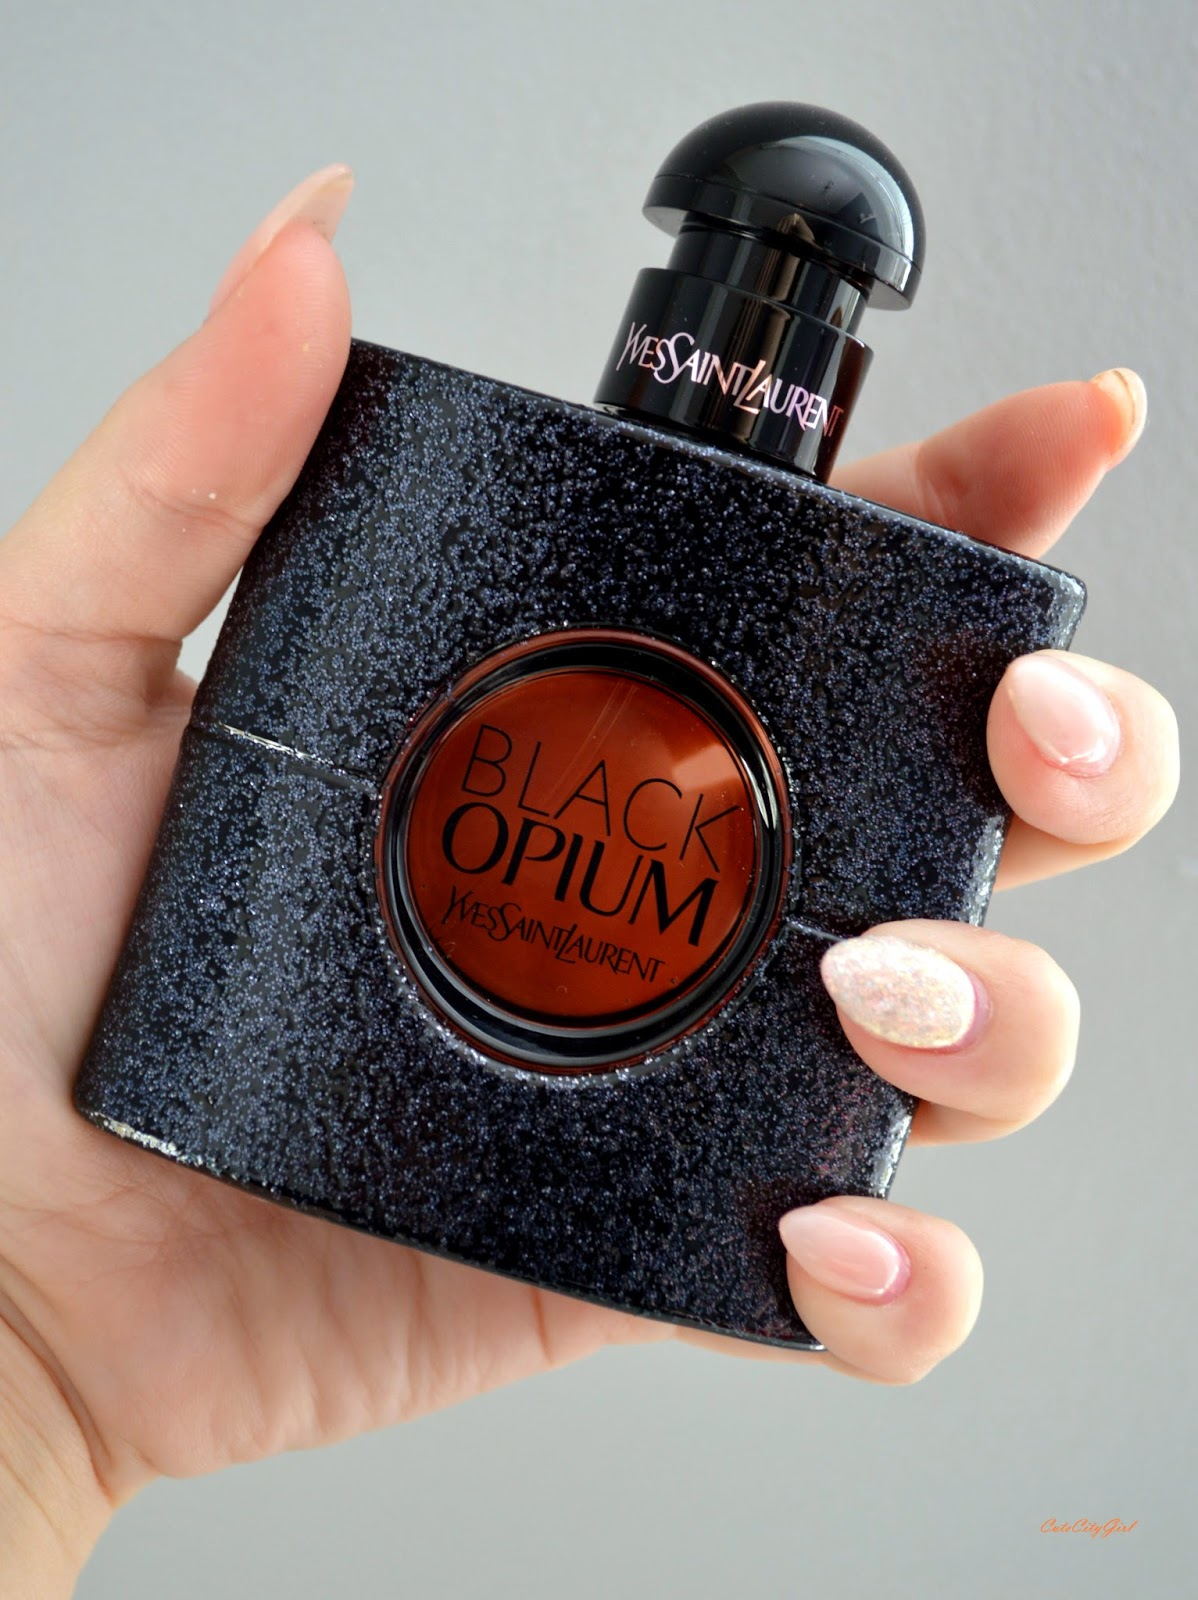 http://cutecitygirl.blogspot.co.at/2014/10/black-opium-by-yves-saint-laurent.html